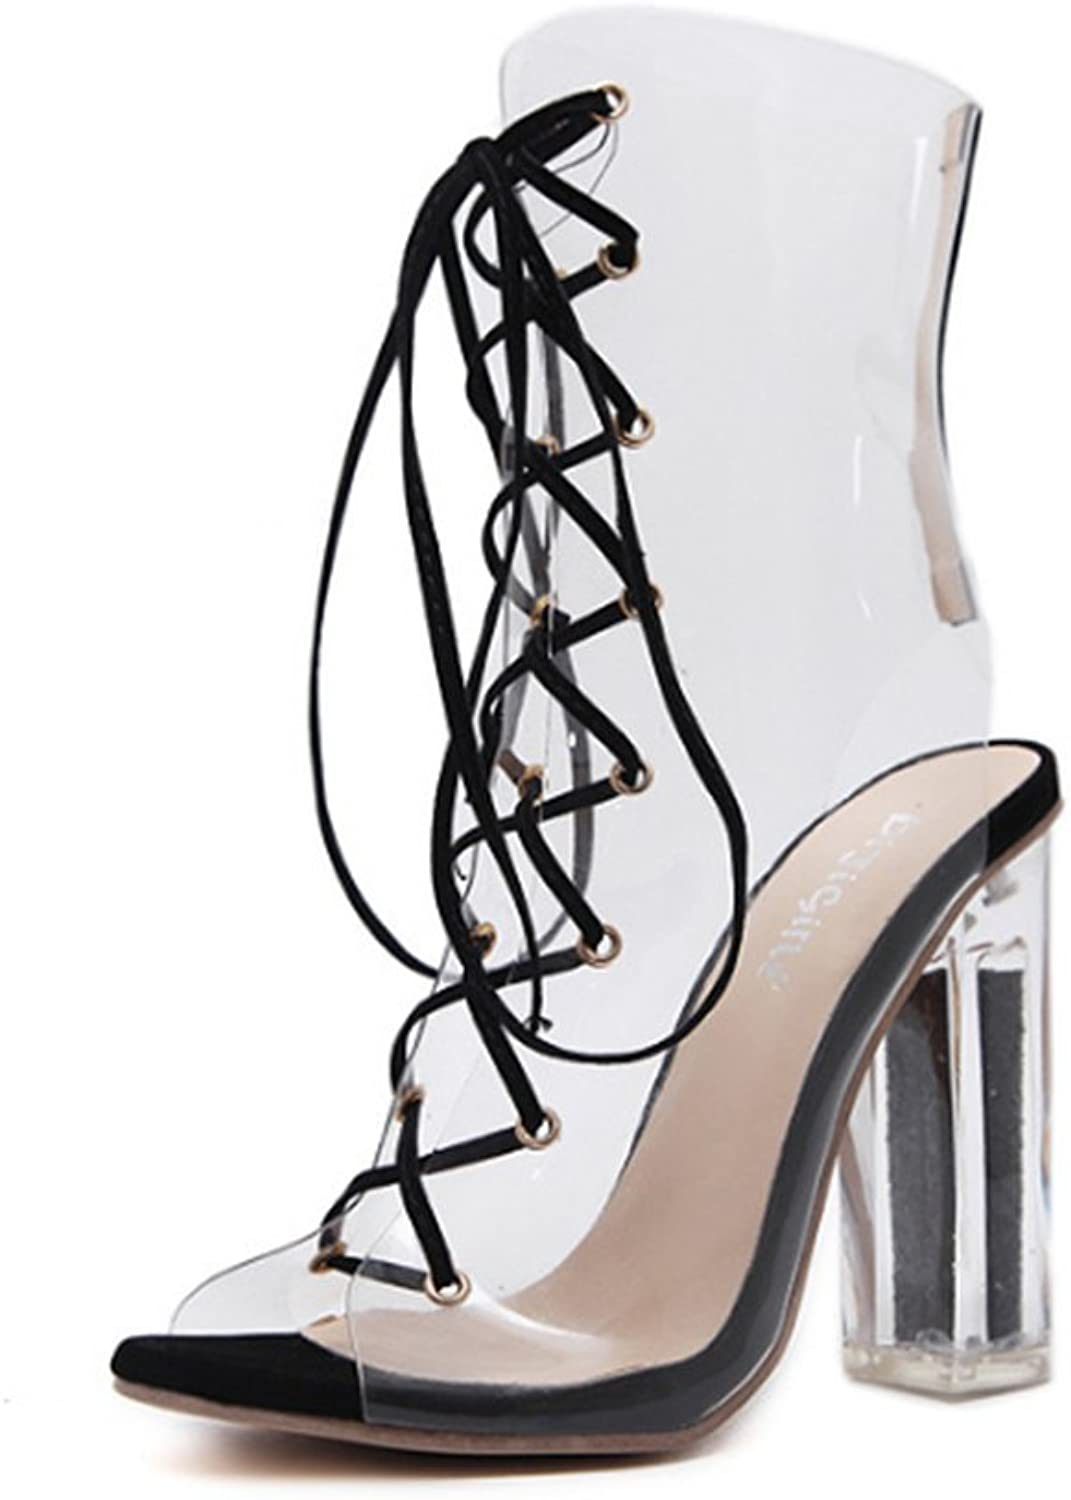 IINFINE Women's Peep Toe Cut Out High Heel Stiletto Lace up Ankle Clear Sexy Summer High Sandals